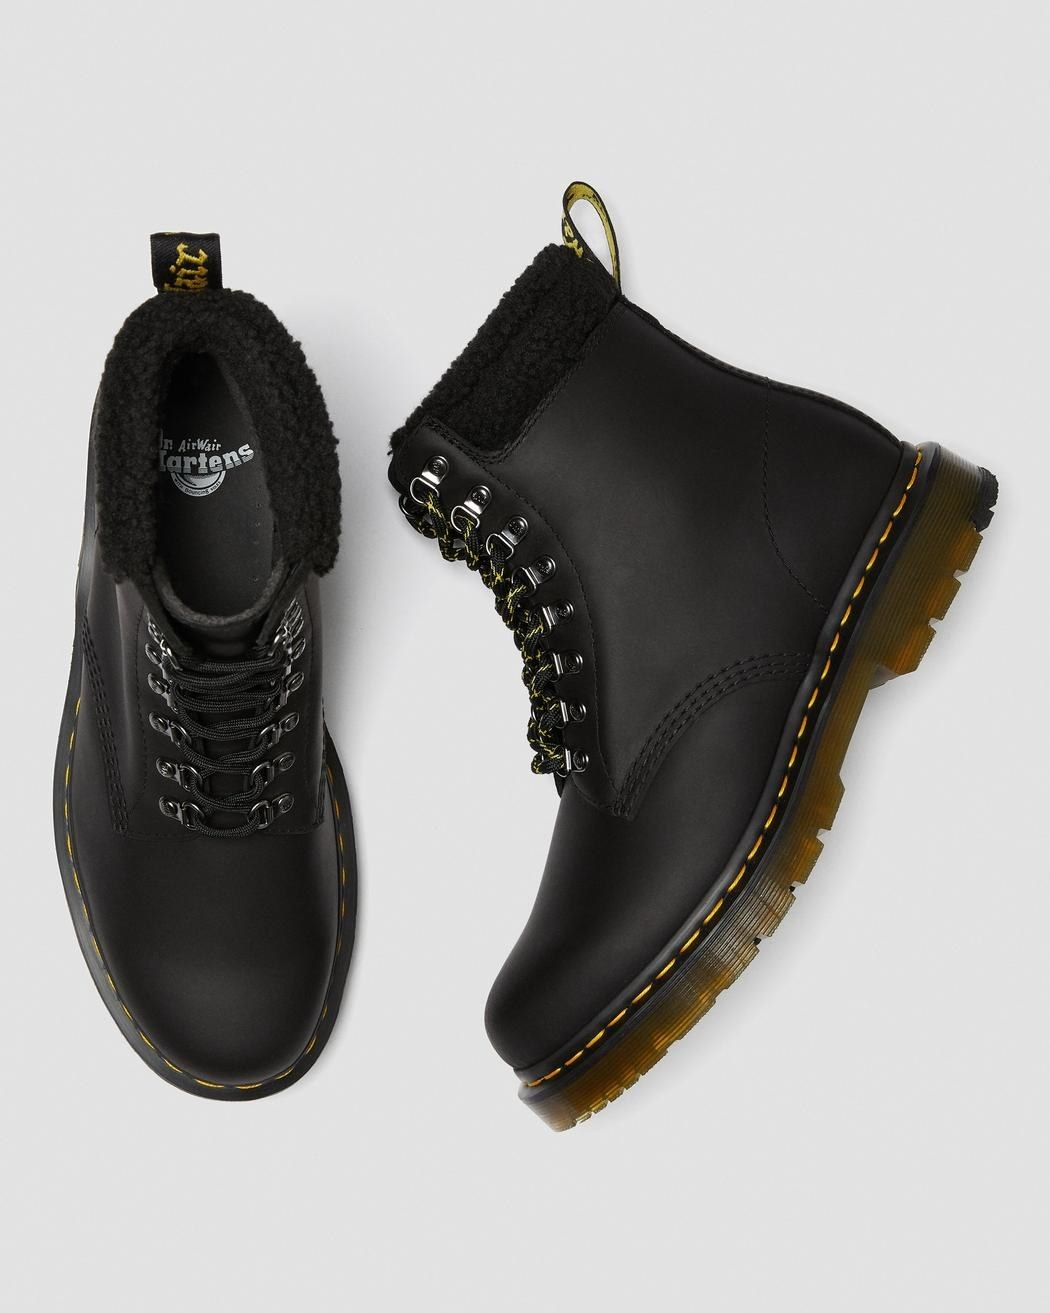 Black Dr. Martens boots with faux-fleece collar accents